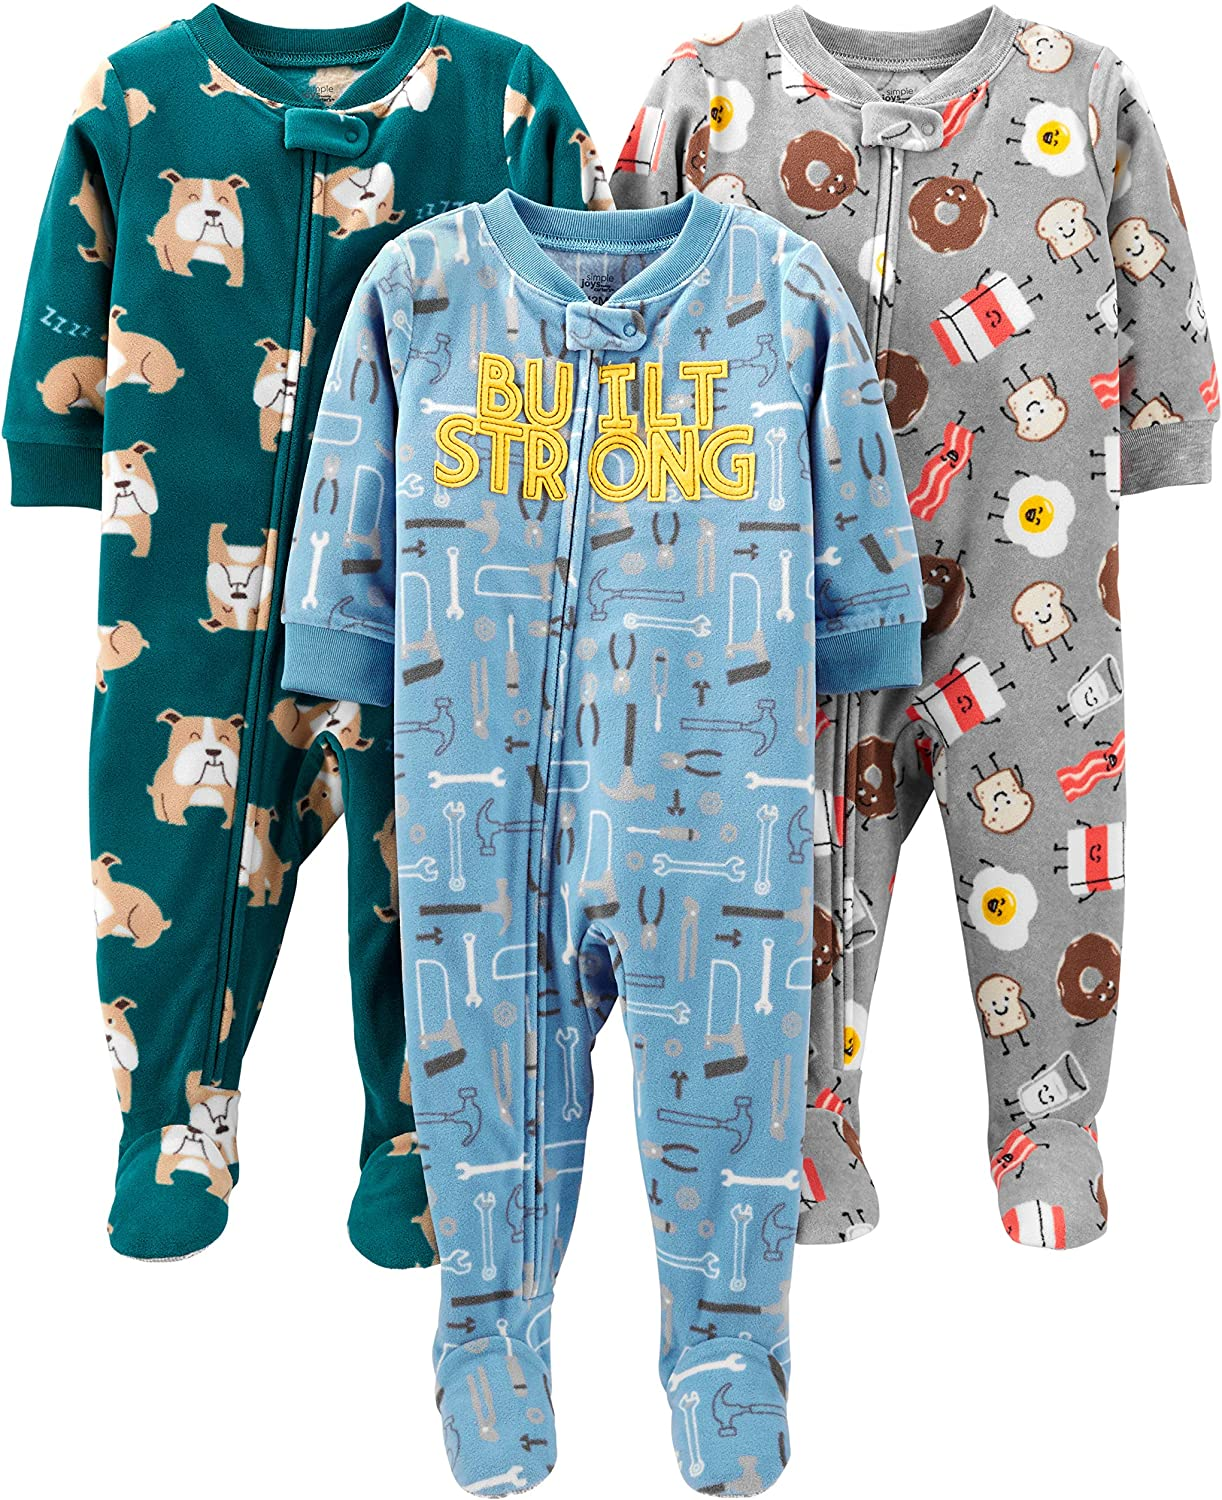 Simple Joys by Carters 3-Pack Loose Fit Flame Resistant Fleece Footed Pajamas Bimbo 0-24 Pacco da 3